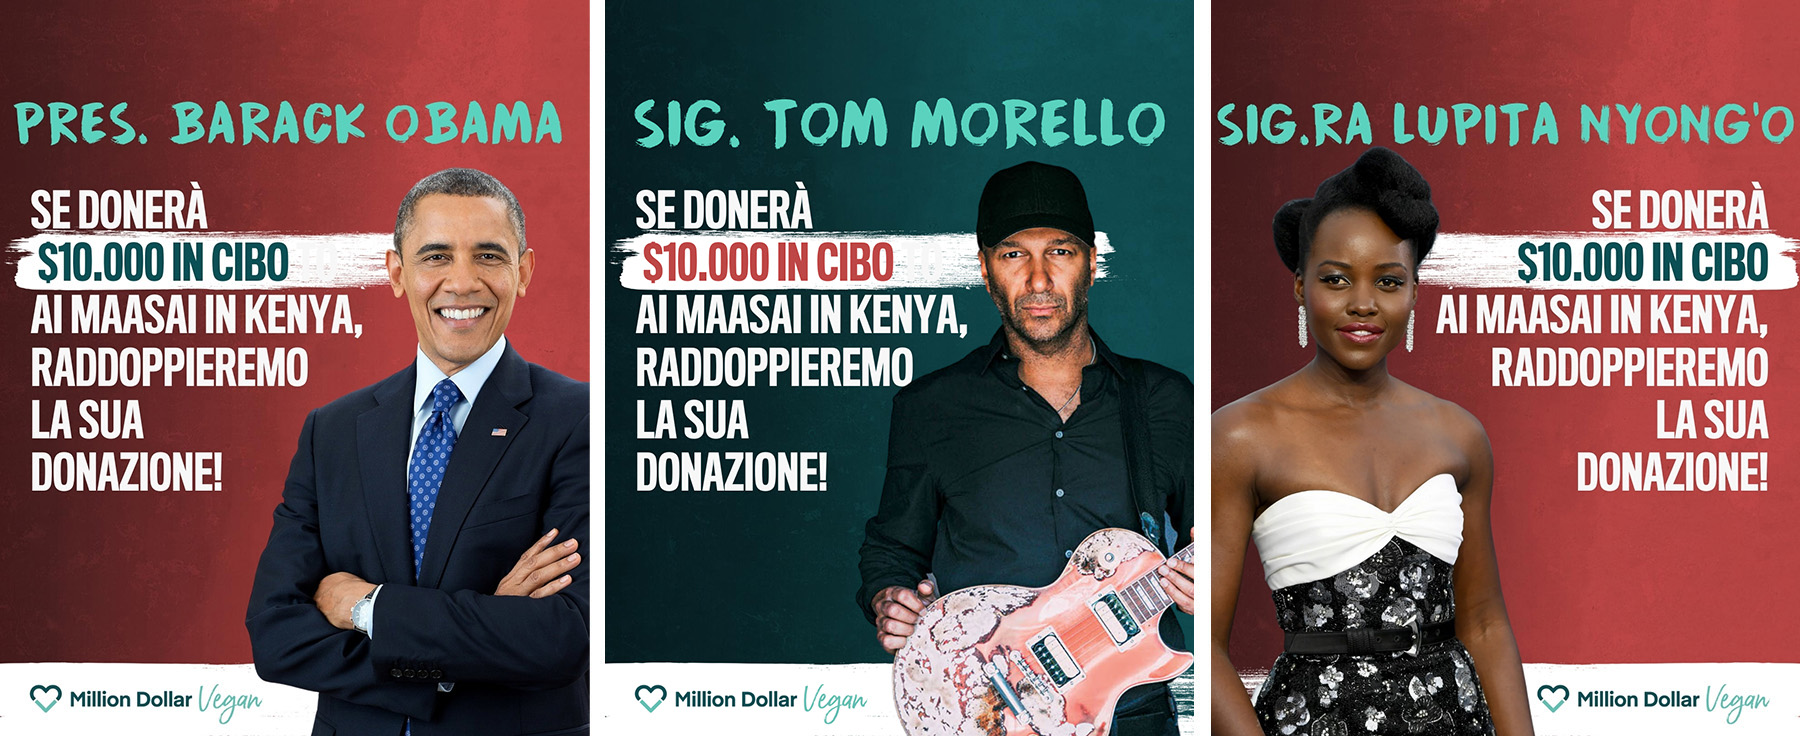 10.000 dollari la nostra sfida all'ex Presidente Obama, a Lupita Nyong'o e a Tom Morello